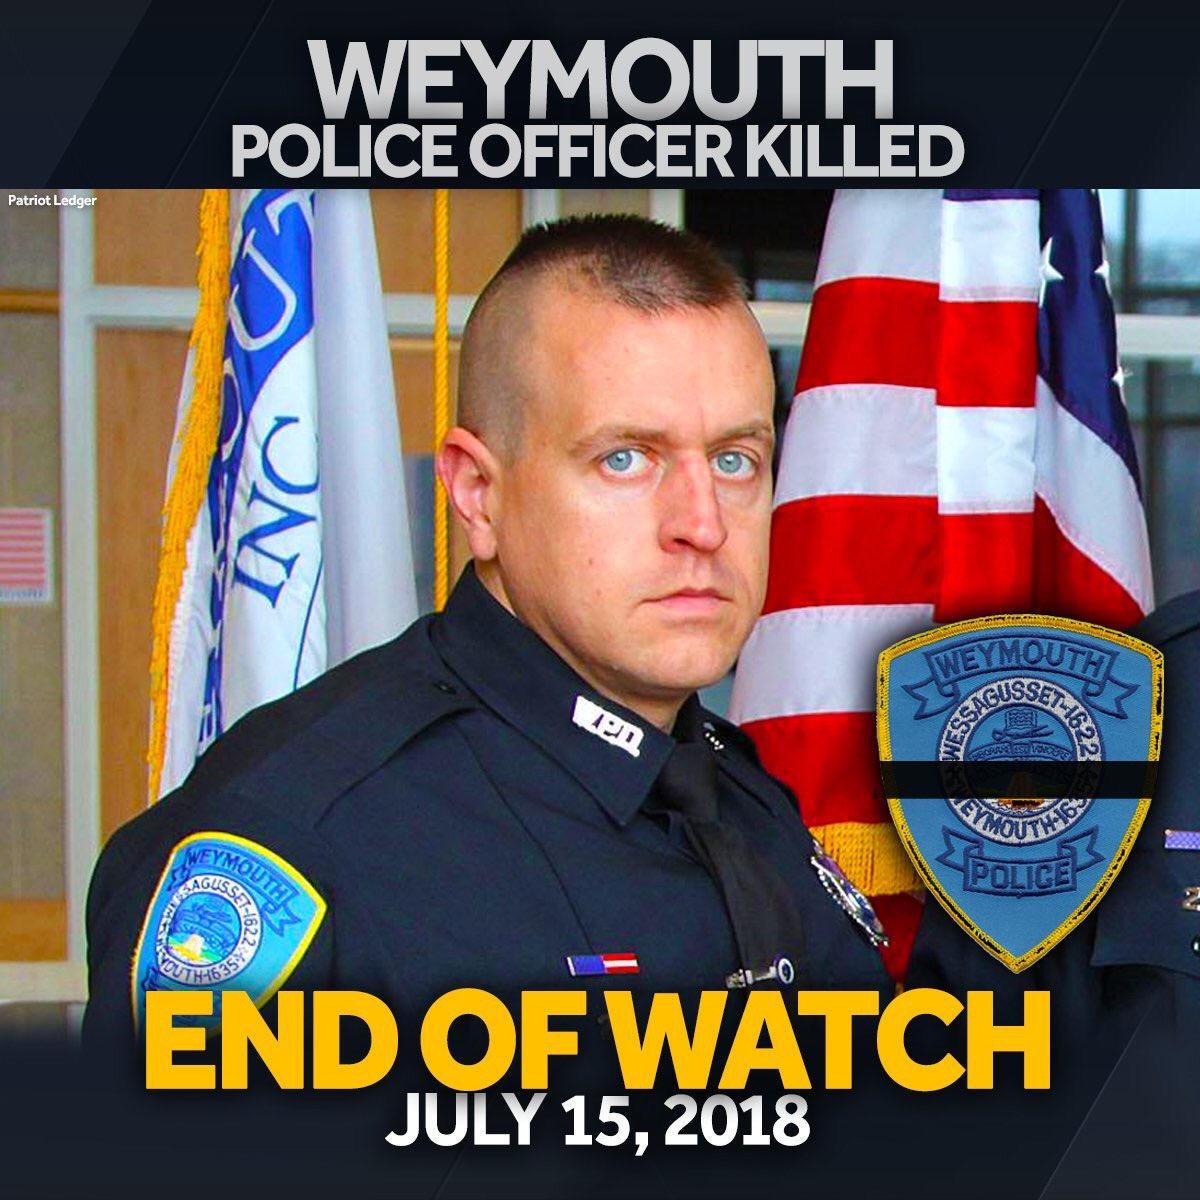 Rest in Peace brother, Michael Chesna. Thoughts, love, and prayers for your family, friends, and department.  @WeymouthPD<br>http://pic.twitter.com/CSAelnhBAw